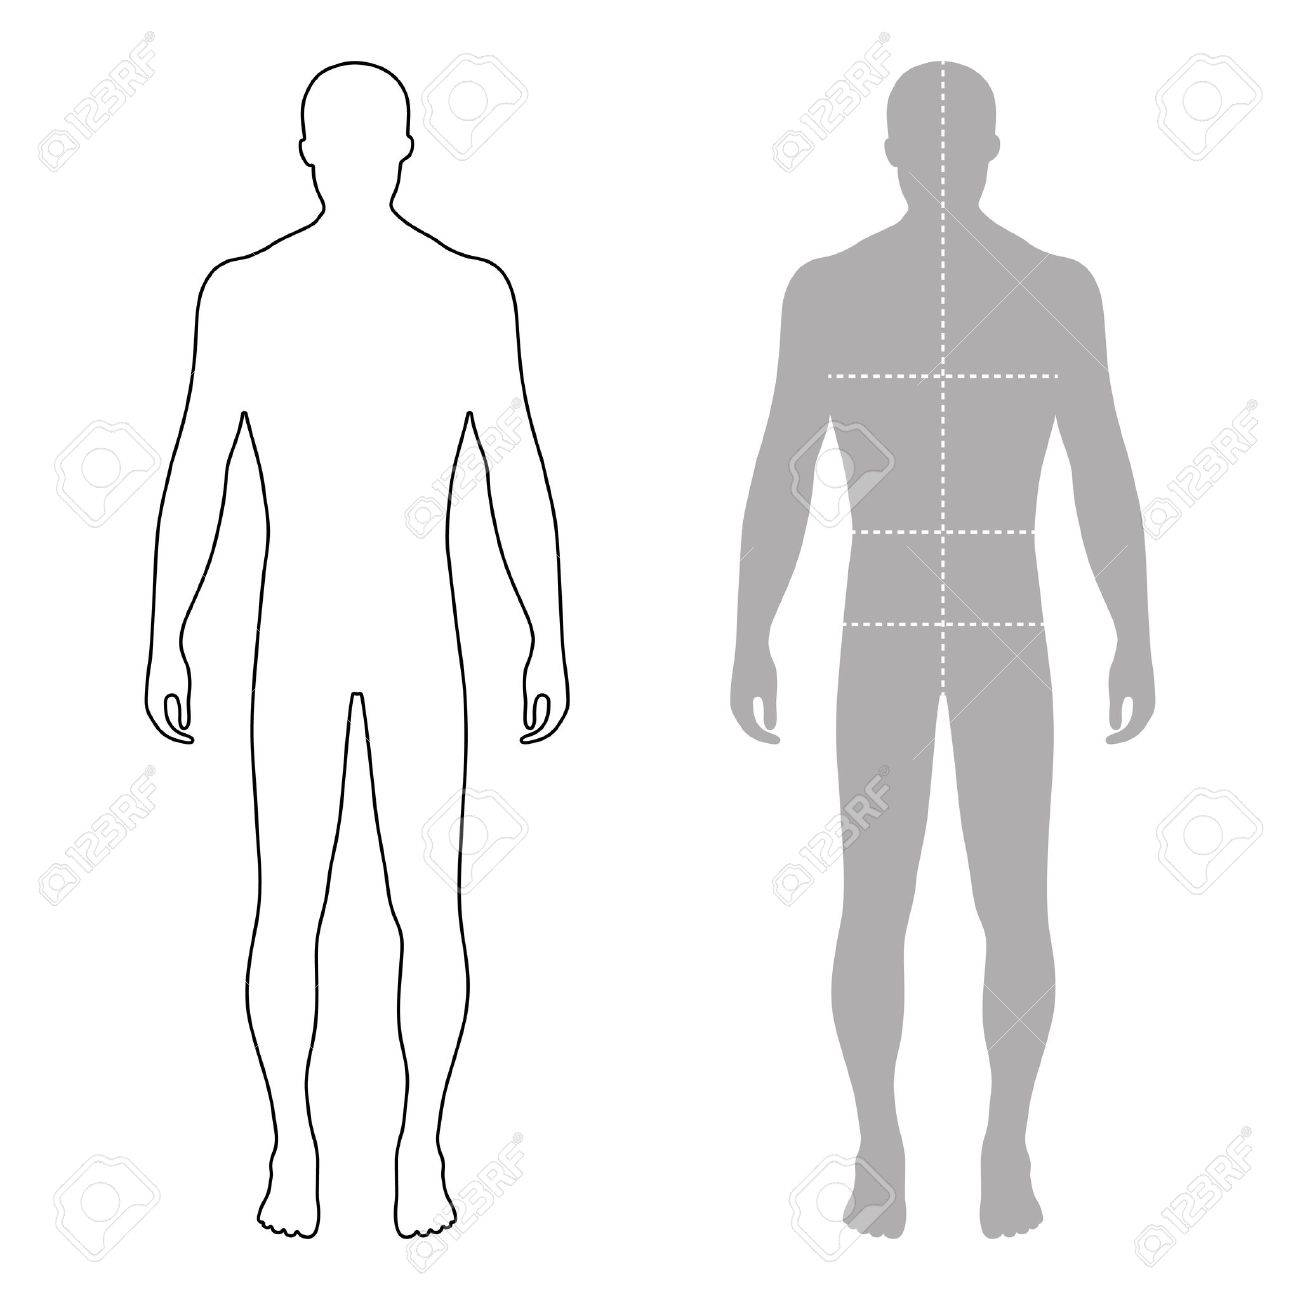 Fashion man full length outlined template figure silhouette with marked body's sizes lines (front view), vector illustration isolated on white background - 61969999